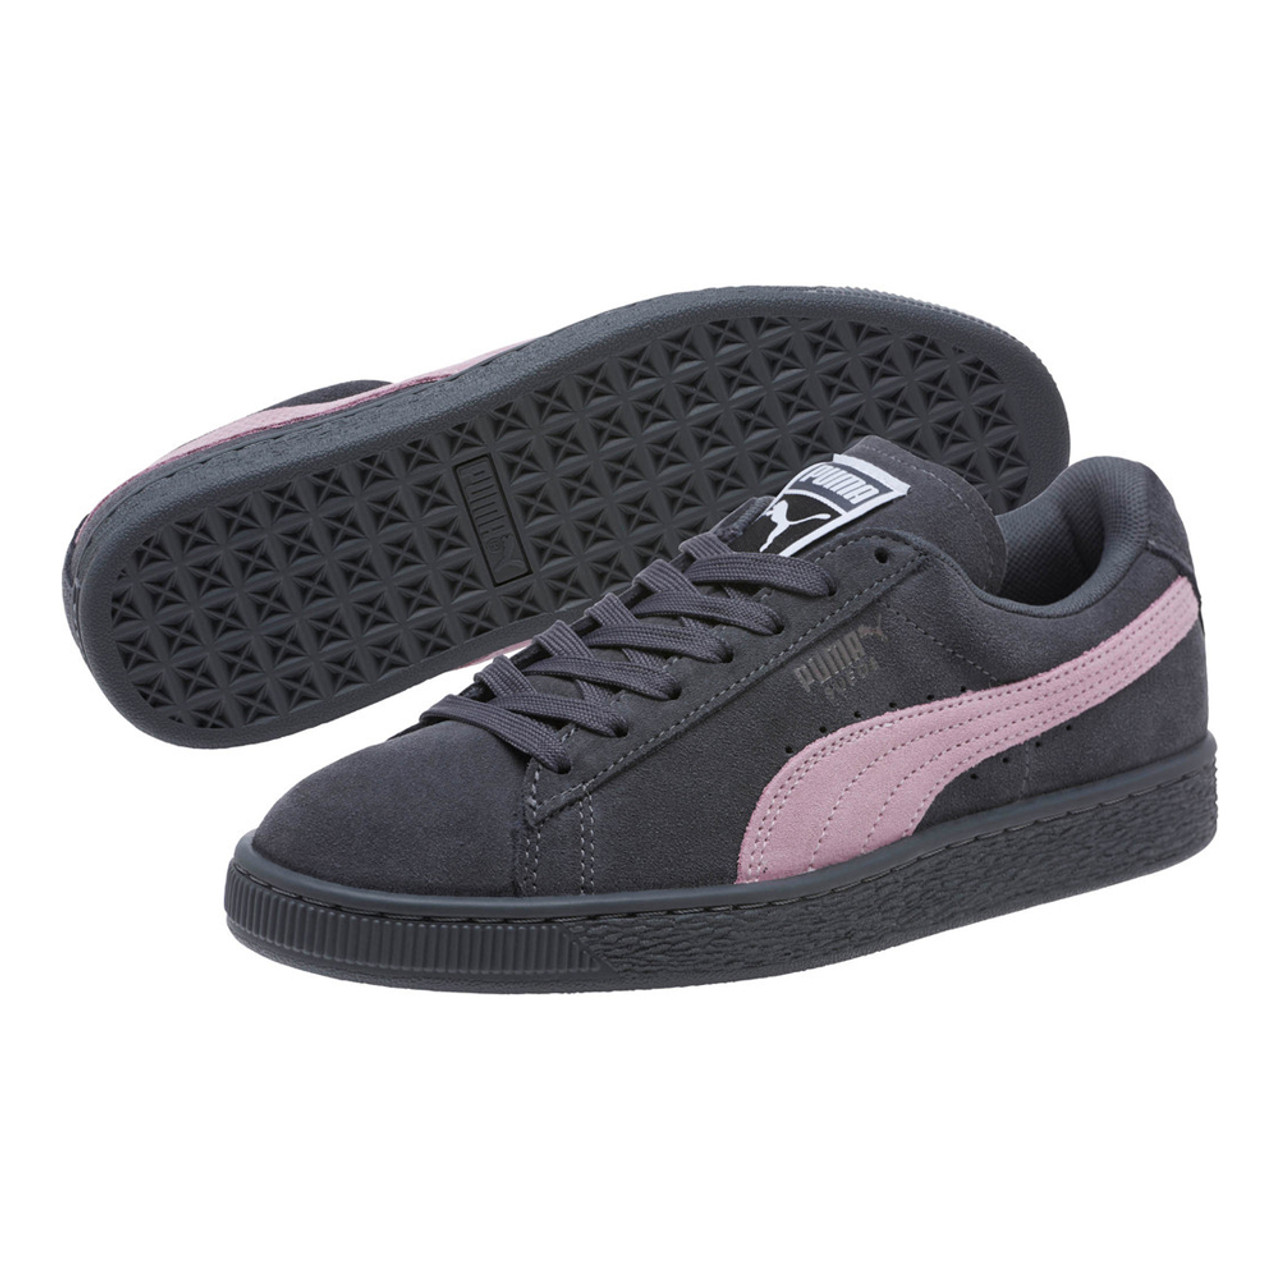 Puma Women s Suede Classic Sneaker Irongate Winsome Orchid - Shop now    Shoolu.com 8bed126701a9